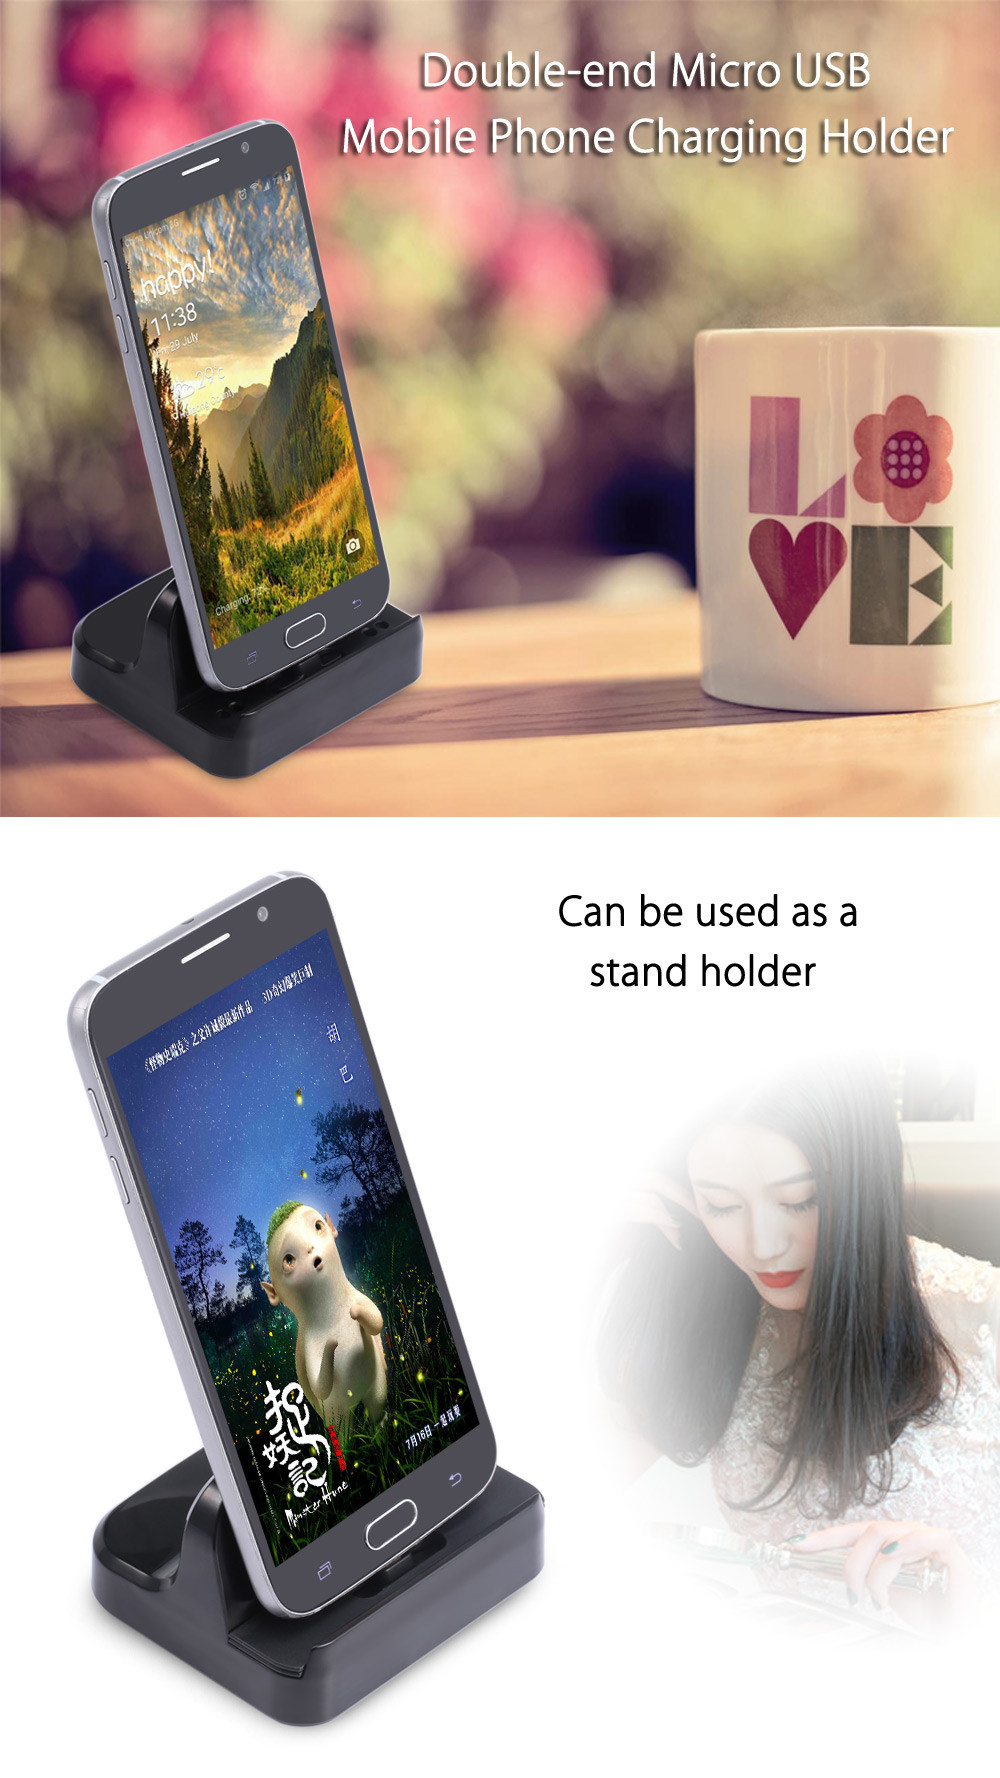 UCD - UAD Two-sided Micro USB Mobile Phone Charging Holder